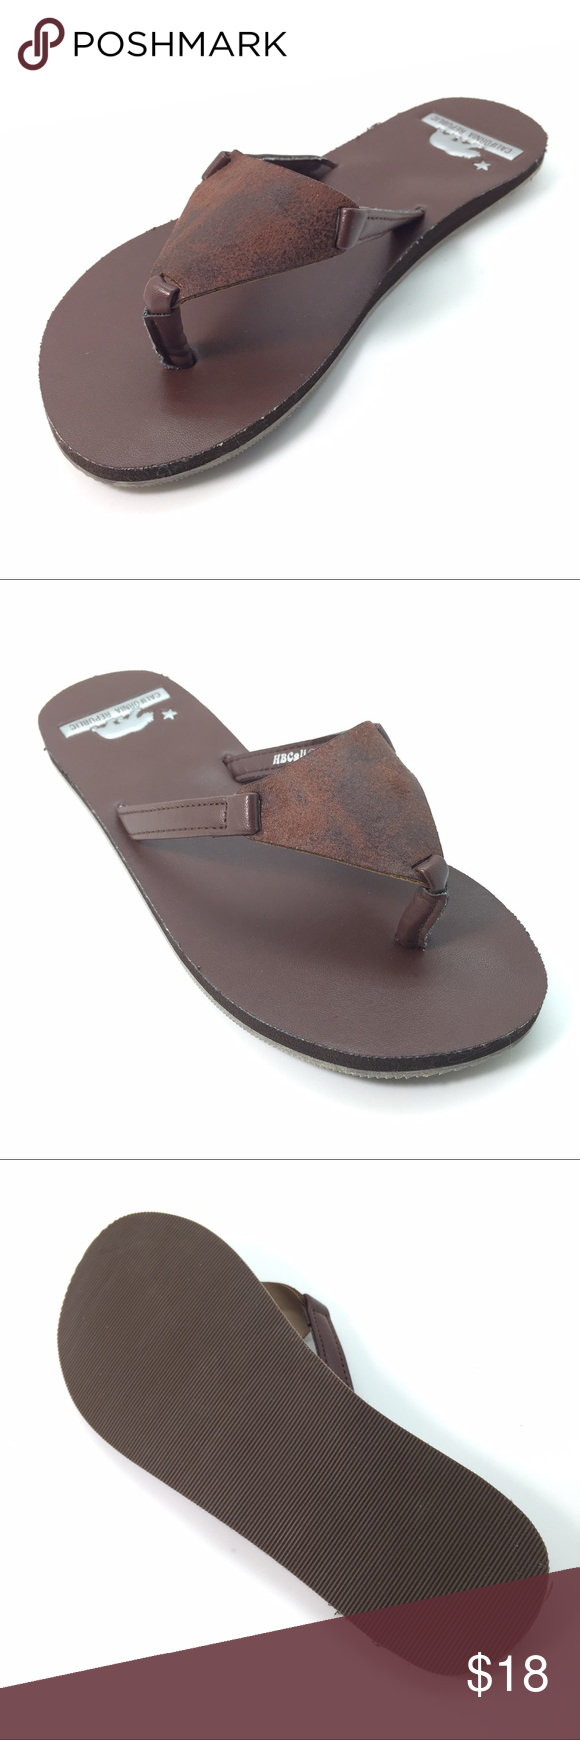 New Leather Brown Sandal With Arch Support Nice Sandals Supportive Sandals Brown Leather Sandals